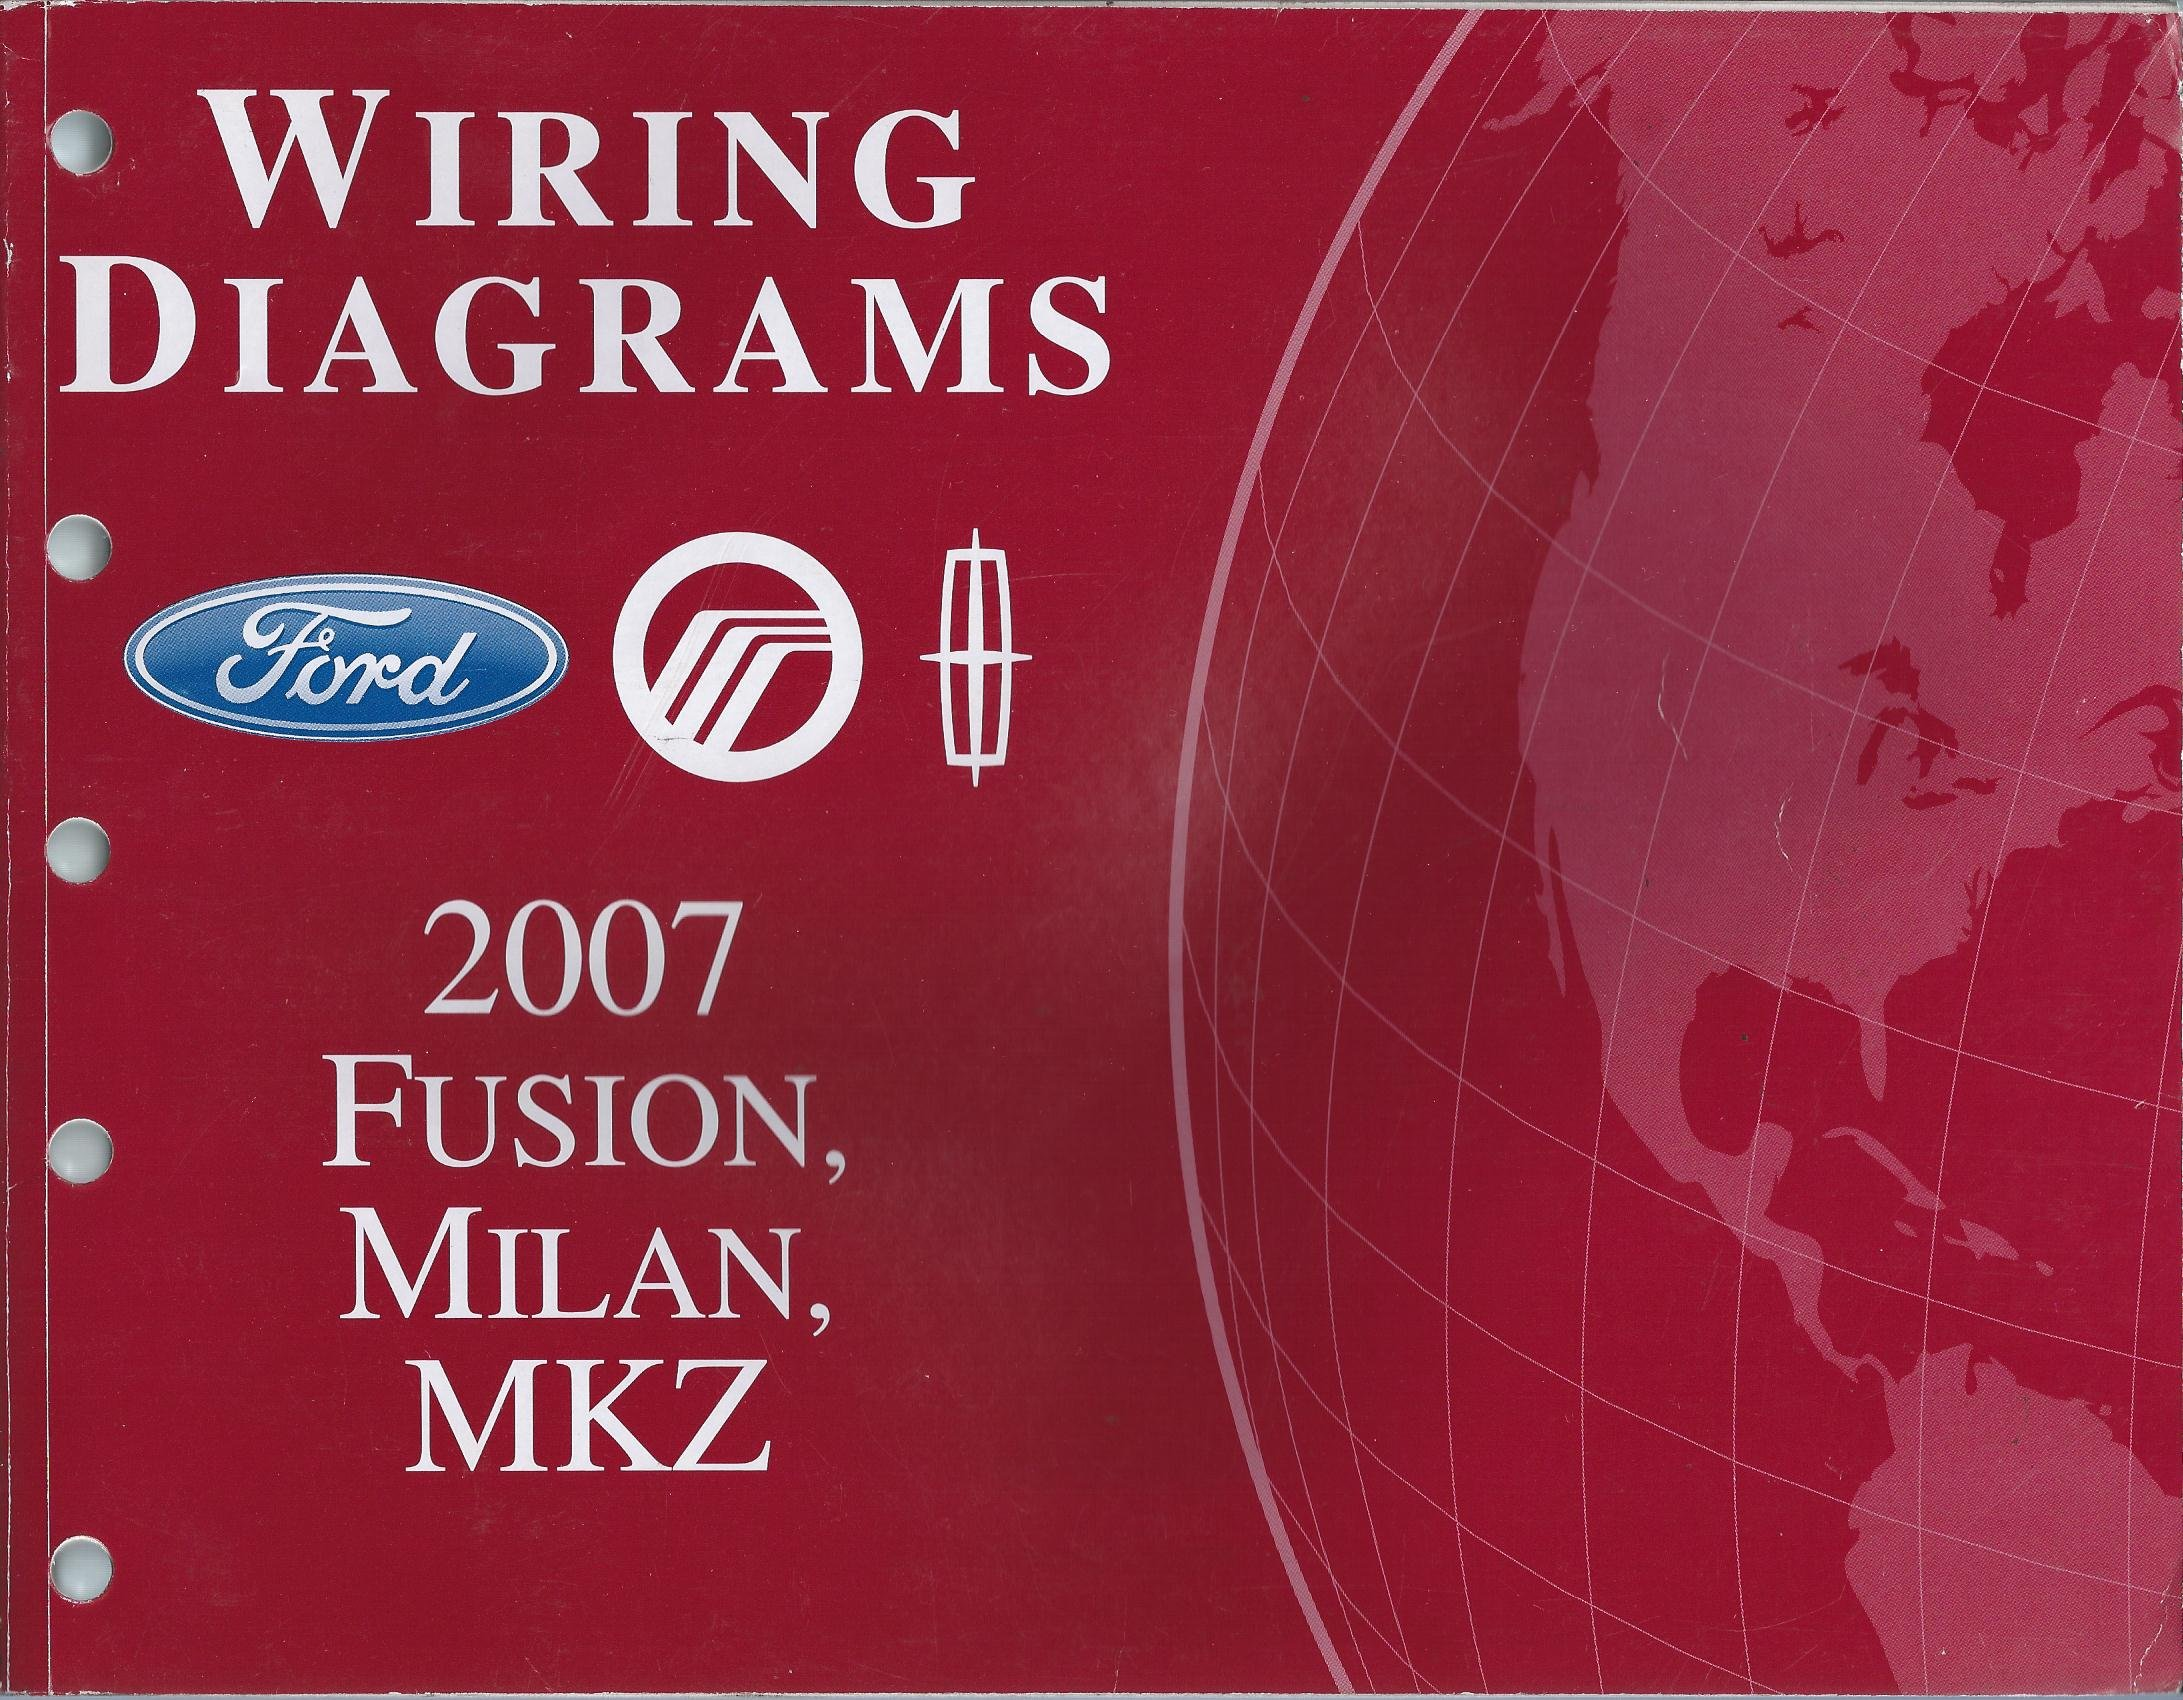 2007 ford fusion, mercury milan, lincoln mkz wiring diagrams paperback –  2007